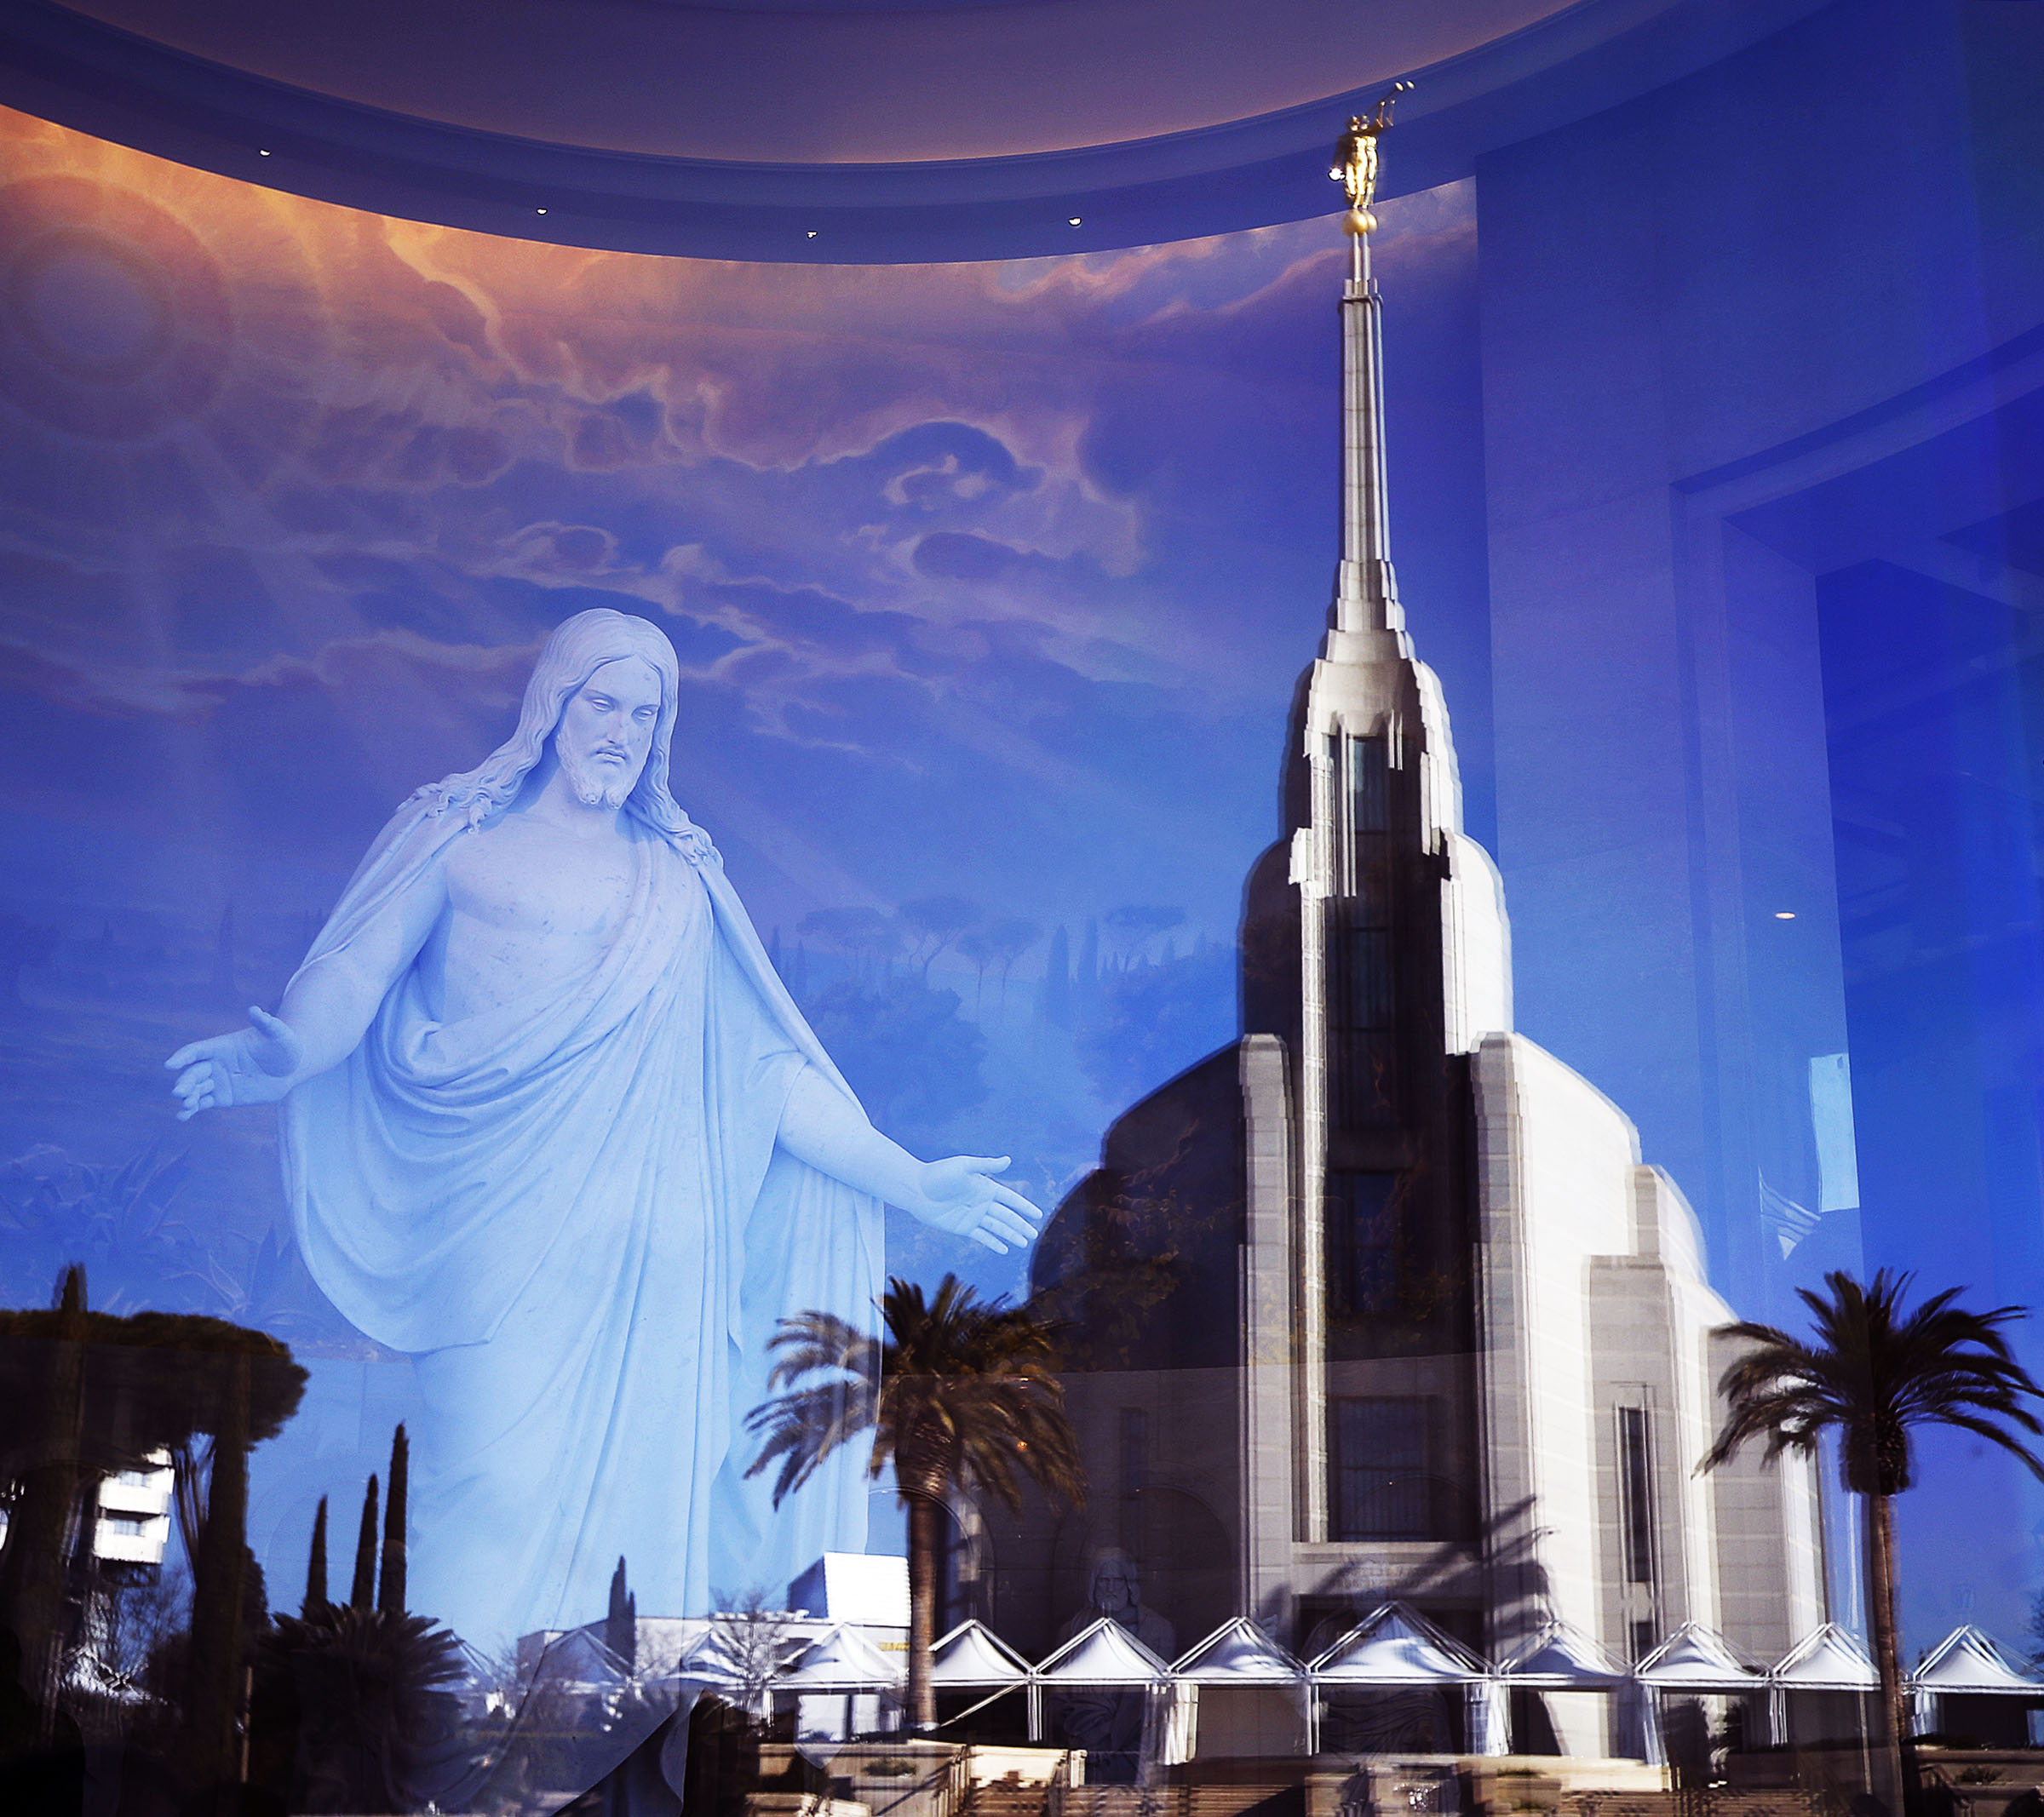 The Rome Italy Temple is reflected in the window of the Rome Temple Visitors' Center of The Church of Jesus Christ of Latter-day Saints on Monday, Jan. 14, 2019.